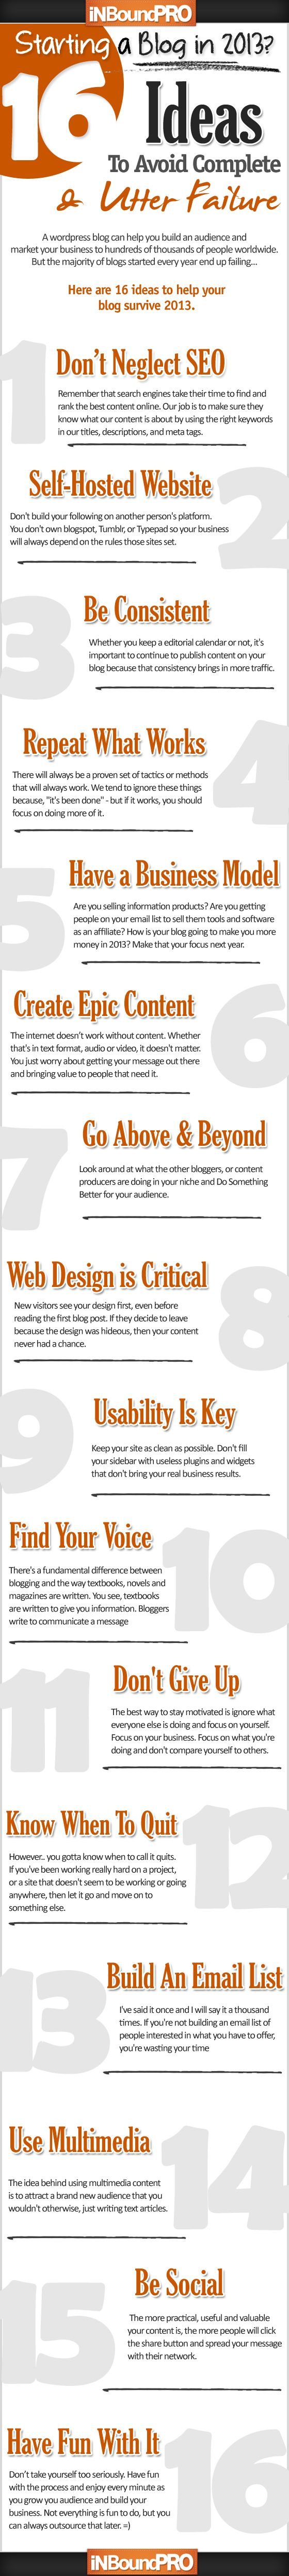 Starting a blog in 2013 Infographic #infografia #infographic #socialmedia